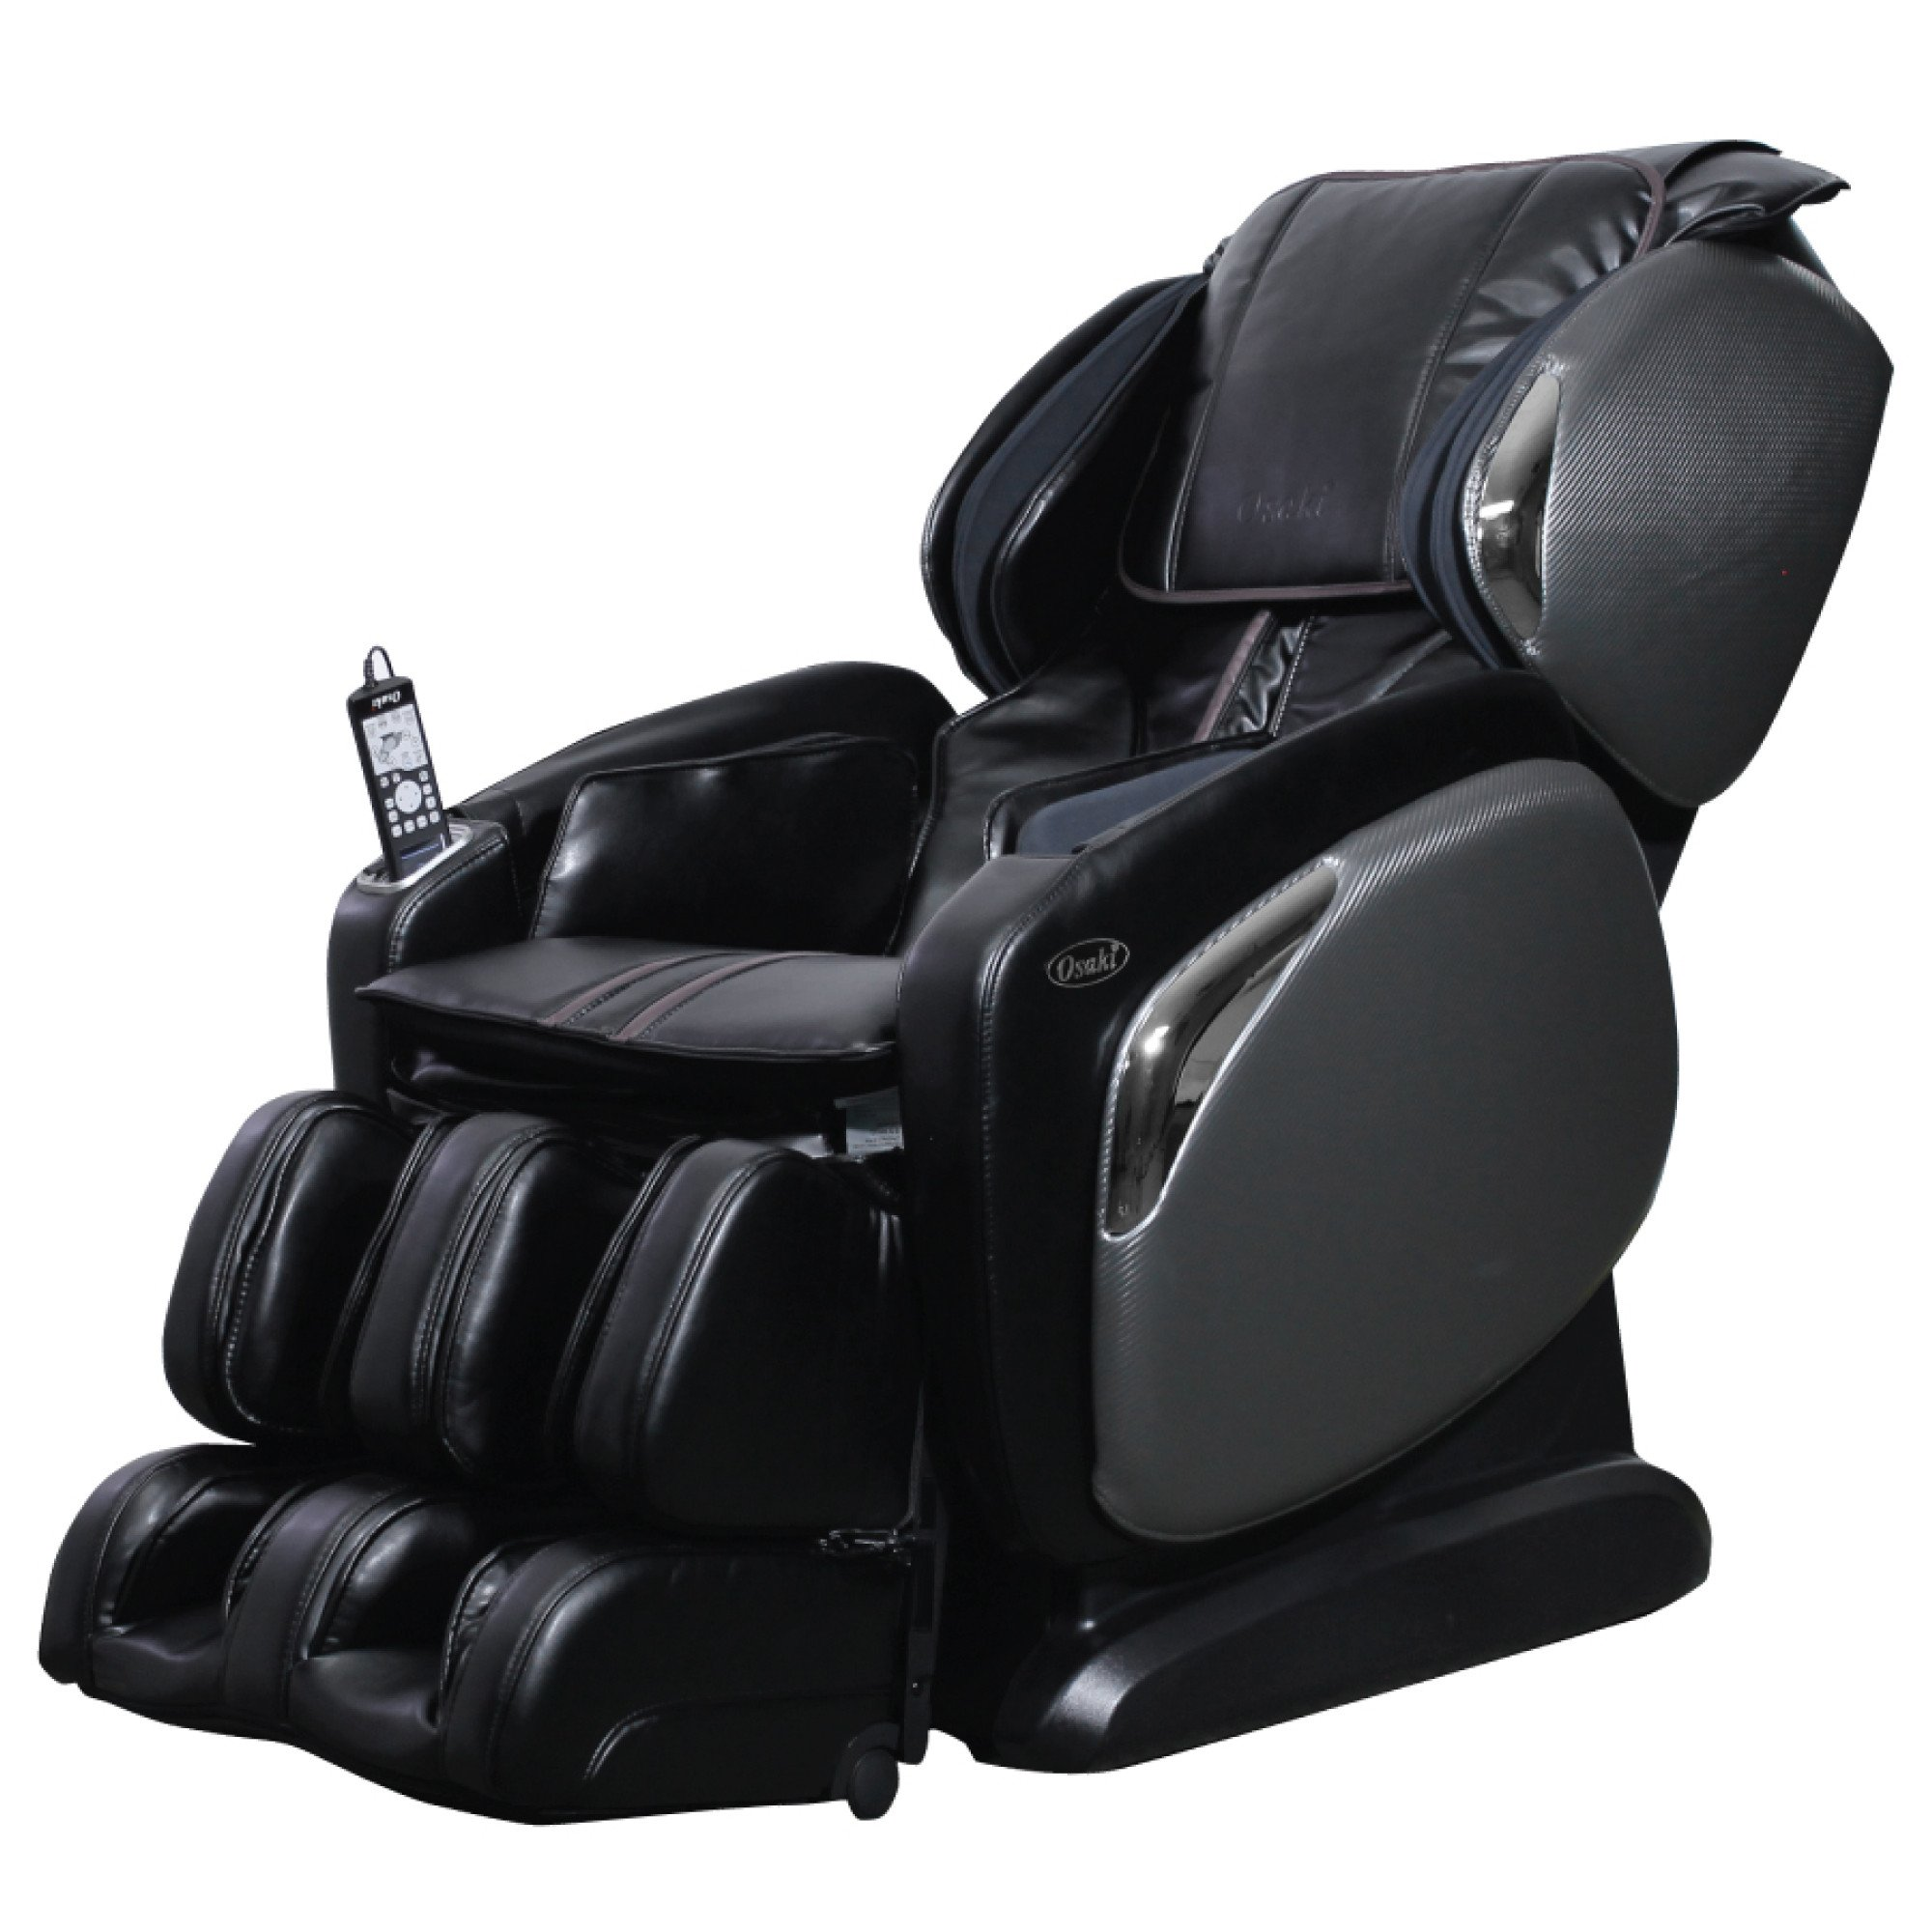 Osaki 4000LS Massage Chair - Black  - Front Angle View